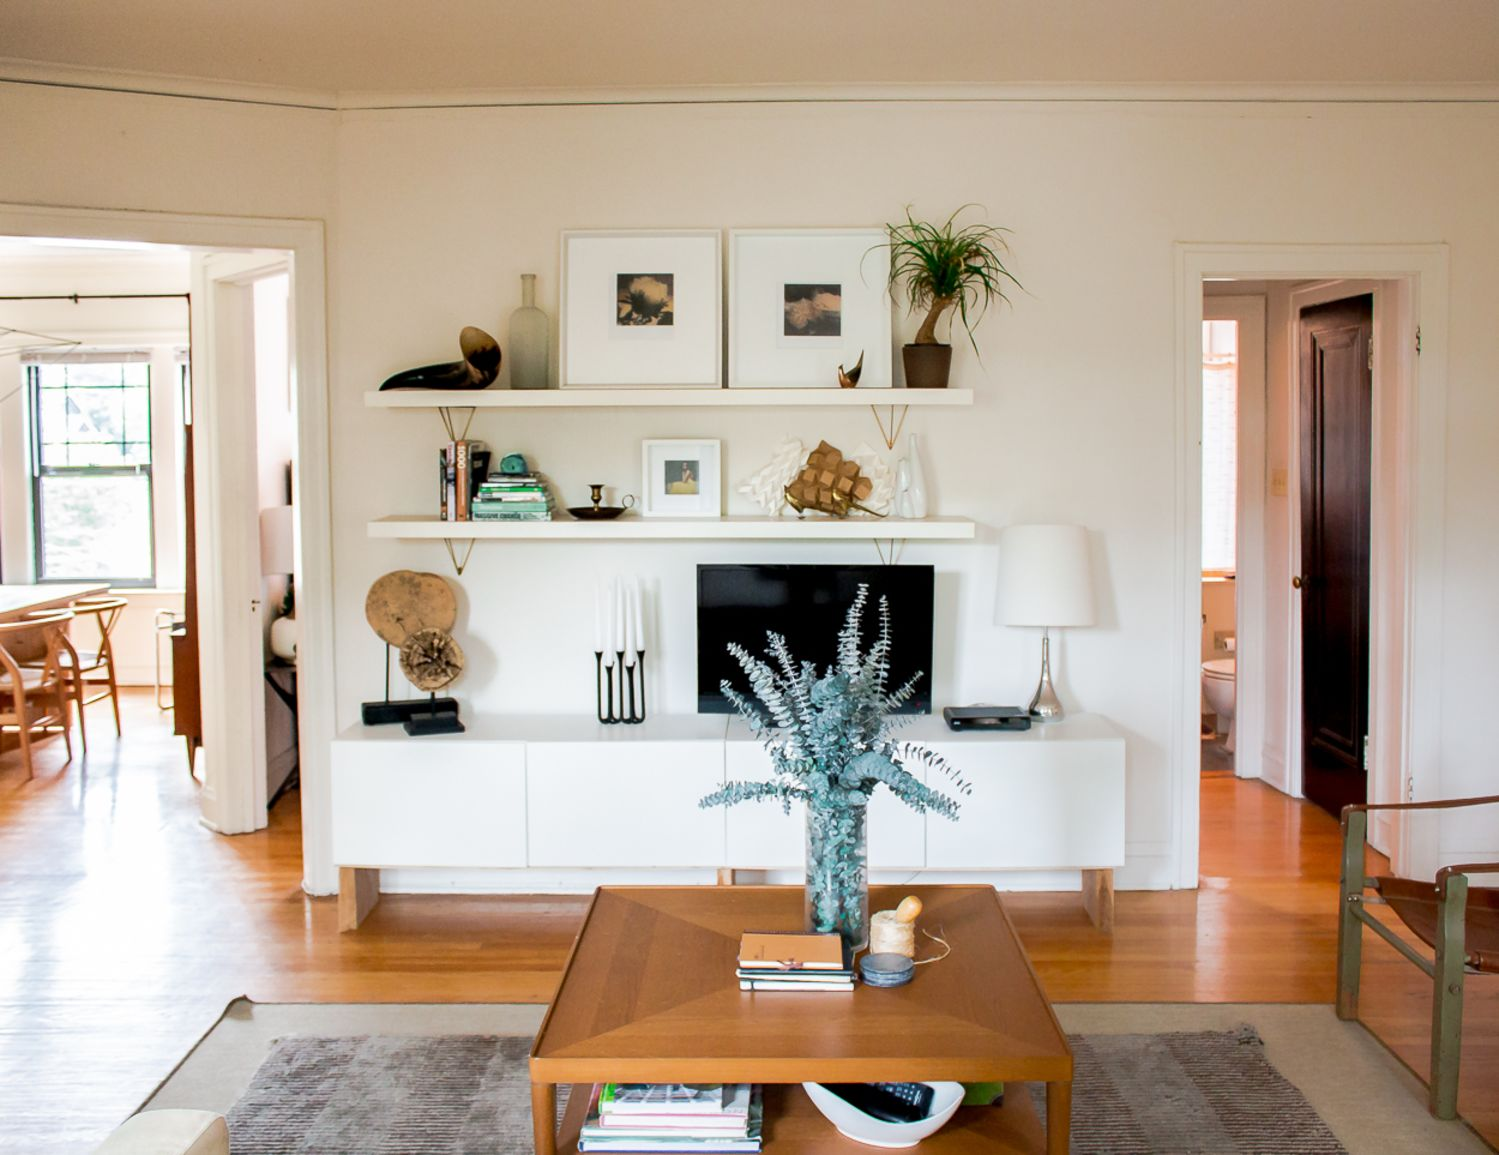 Wall Shelving - Budget Living Room Storage Under $100 ... on Best Sconces For Living Rooms Near Me id=59880